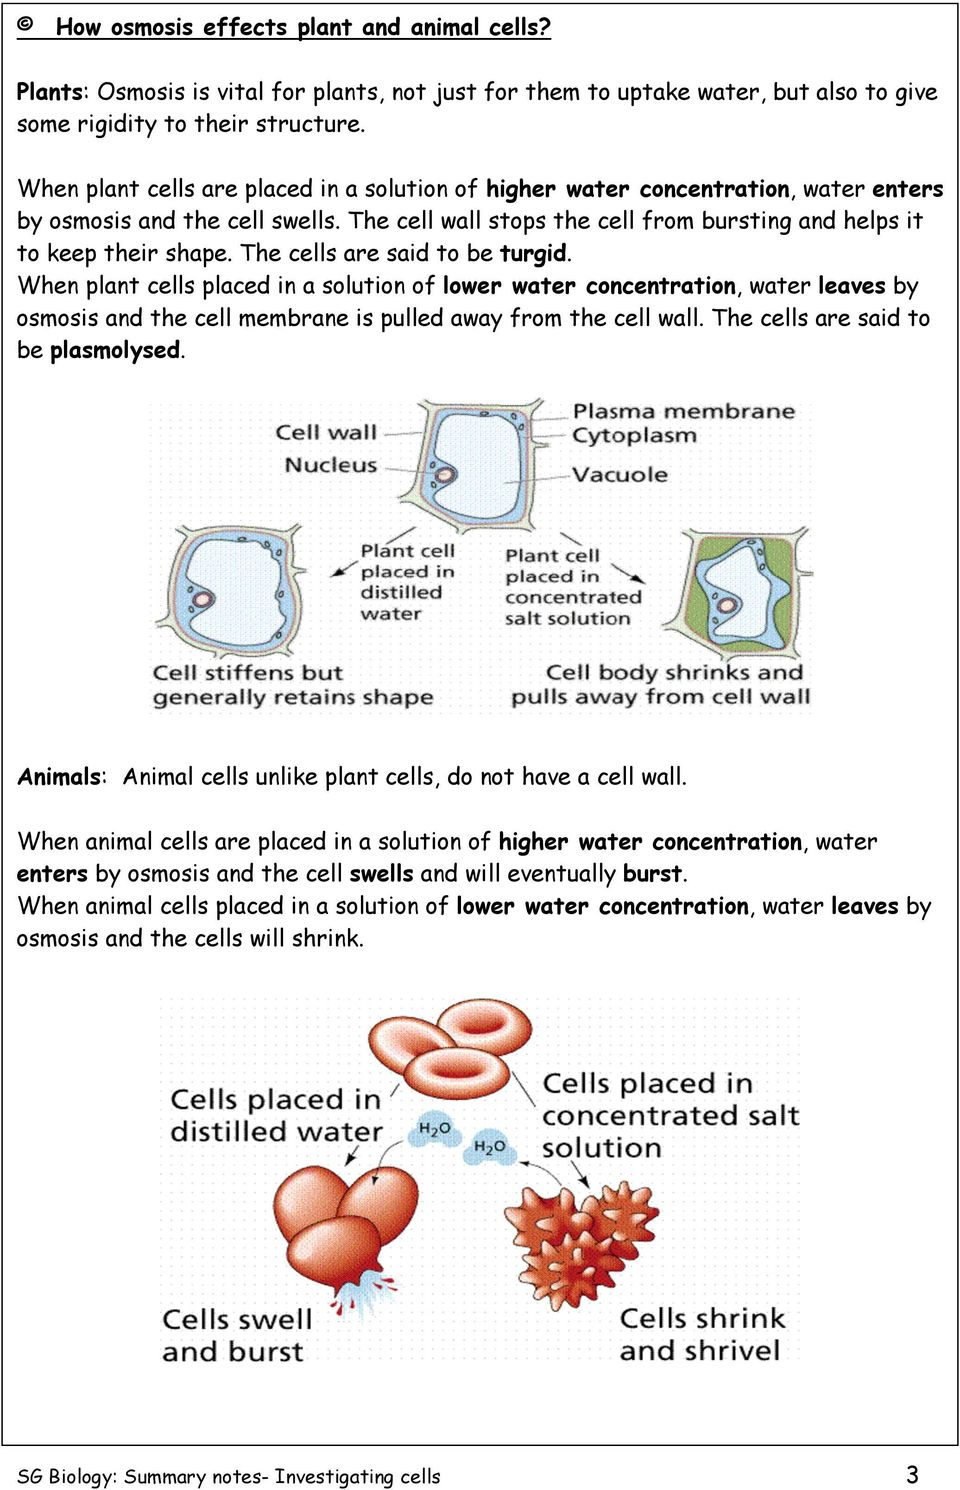 The cells are said to be turgid. When plant cells placed in a solution of lower water concentration, water leaves by osmosis and the cell membrane is pulled away from the cell wall.